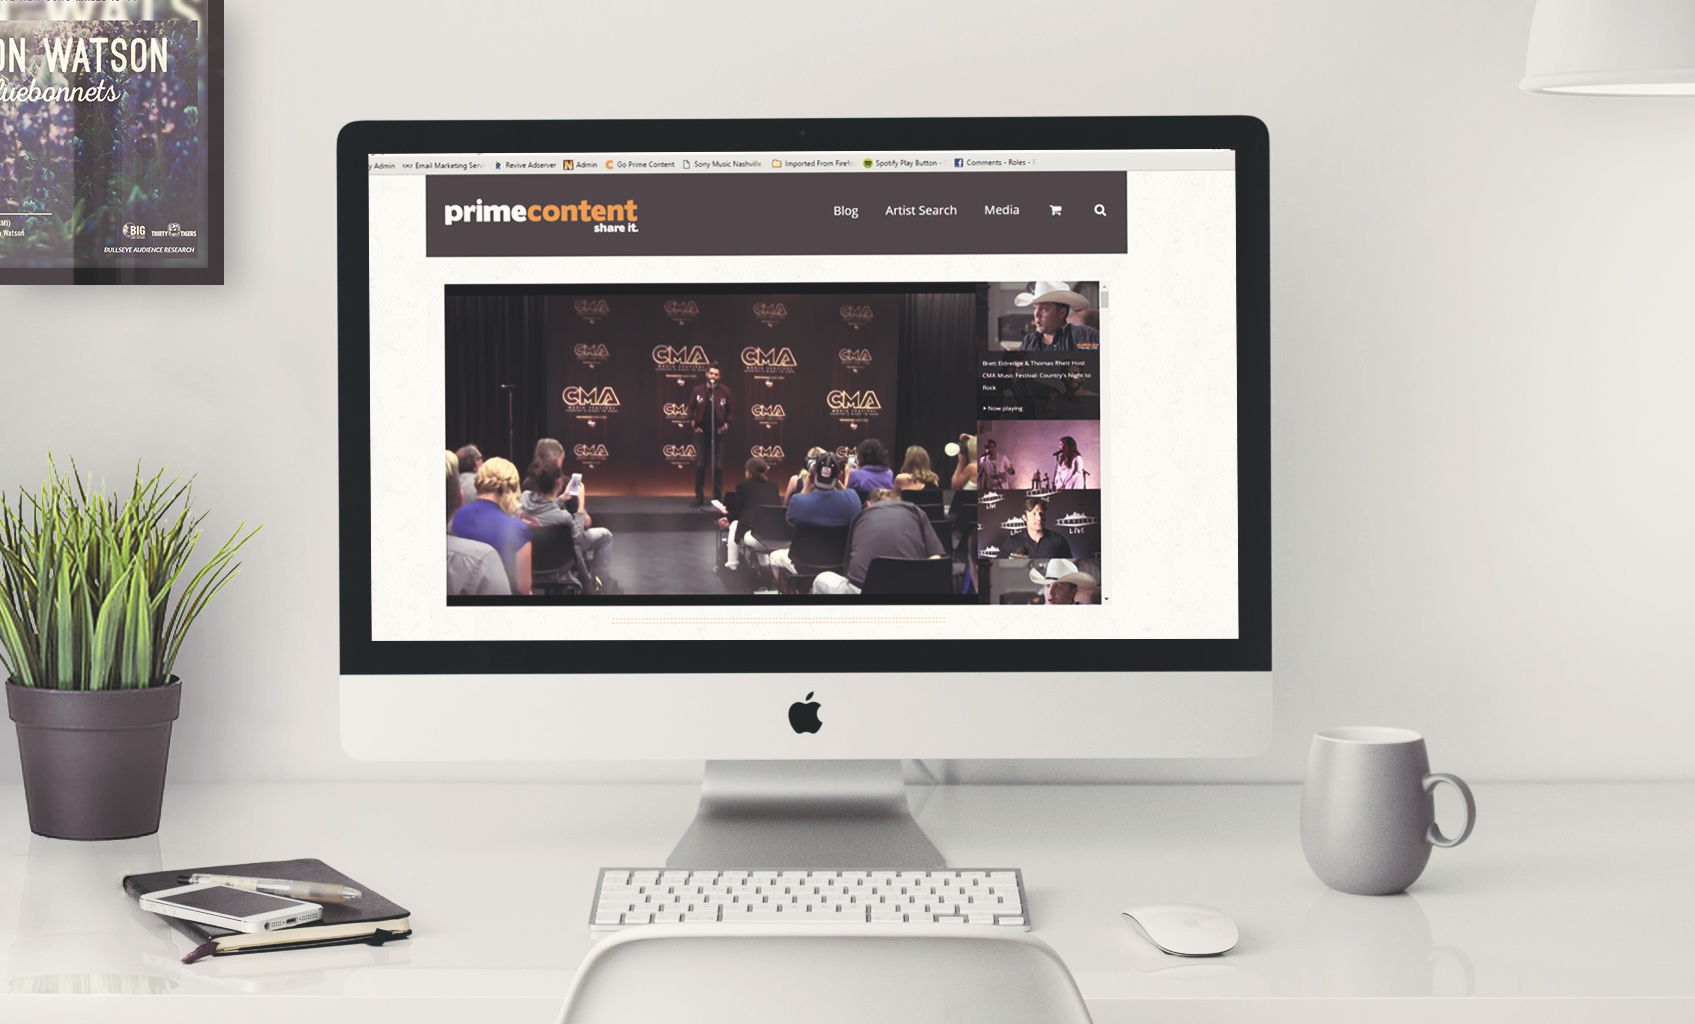 goprimecontent.com Website